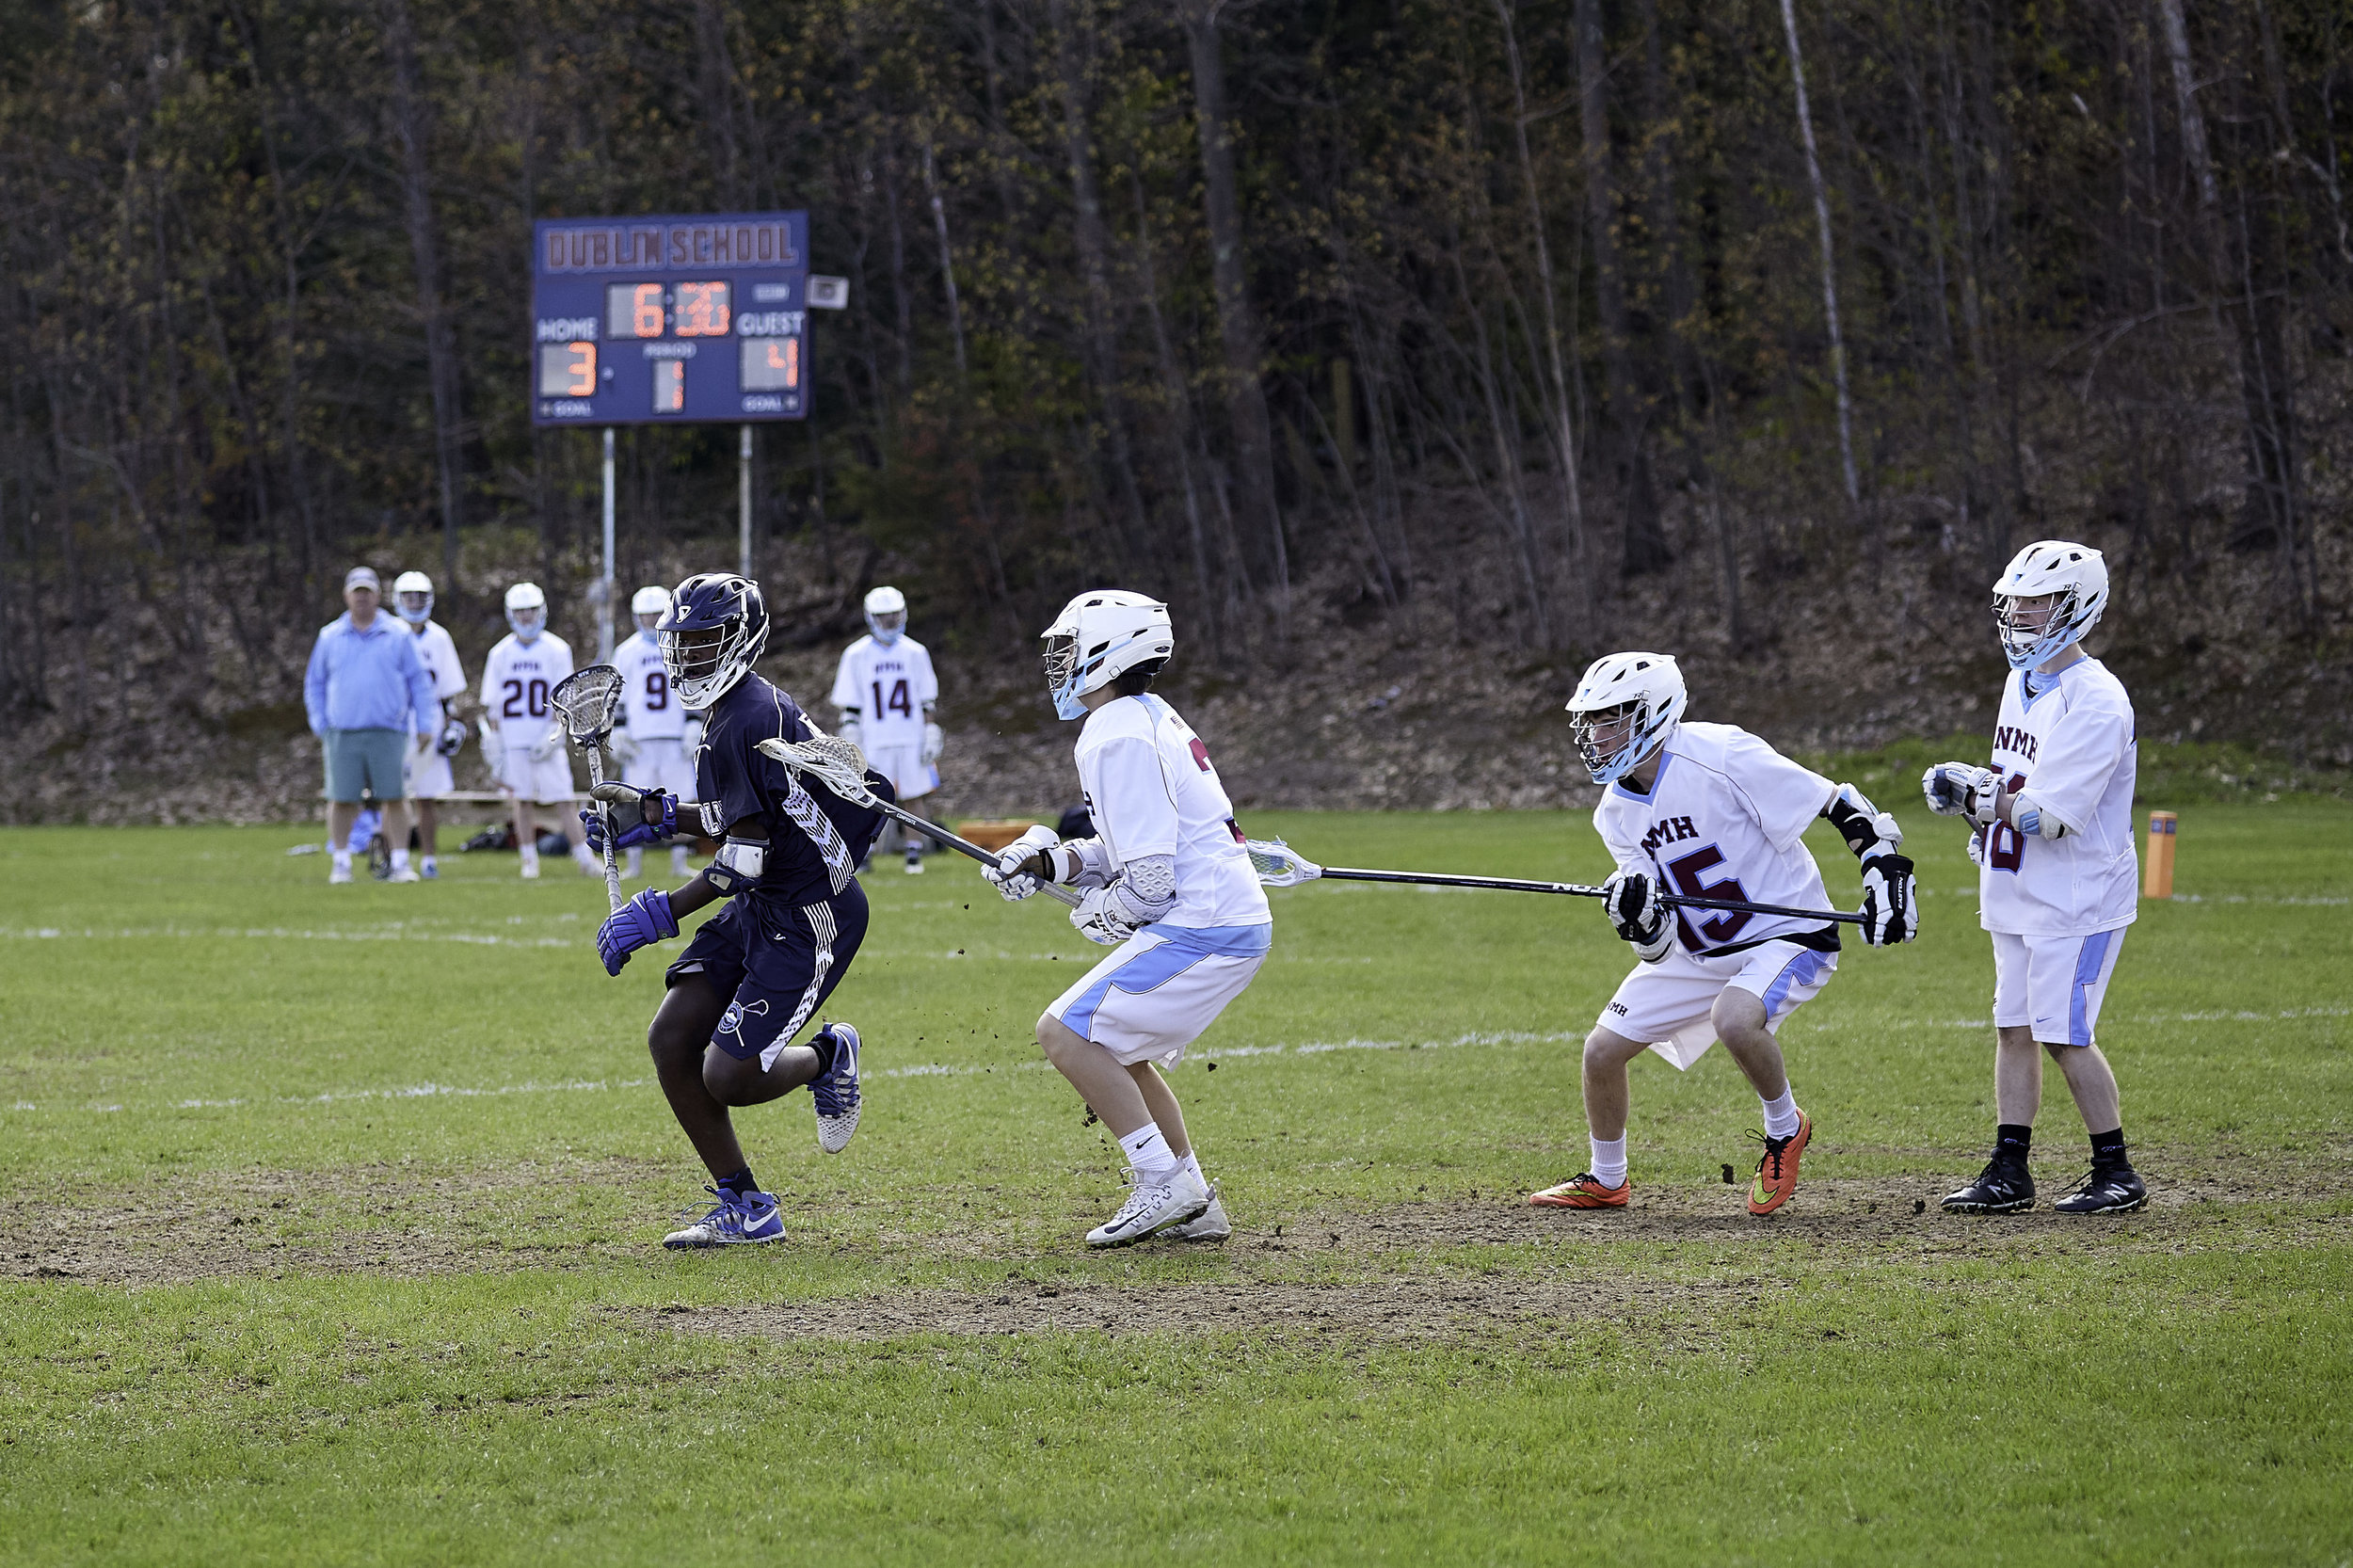 Boys Lax vs Northfield Mount Hermon JV - May 15 2019 - 0004.jpg